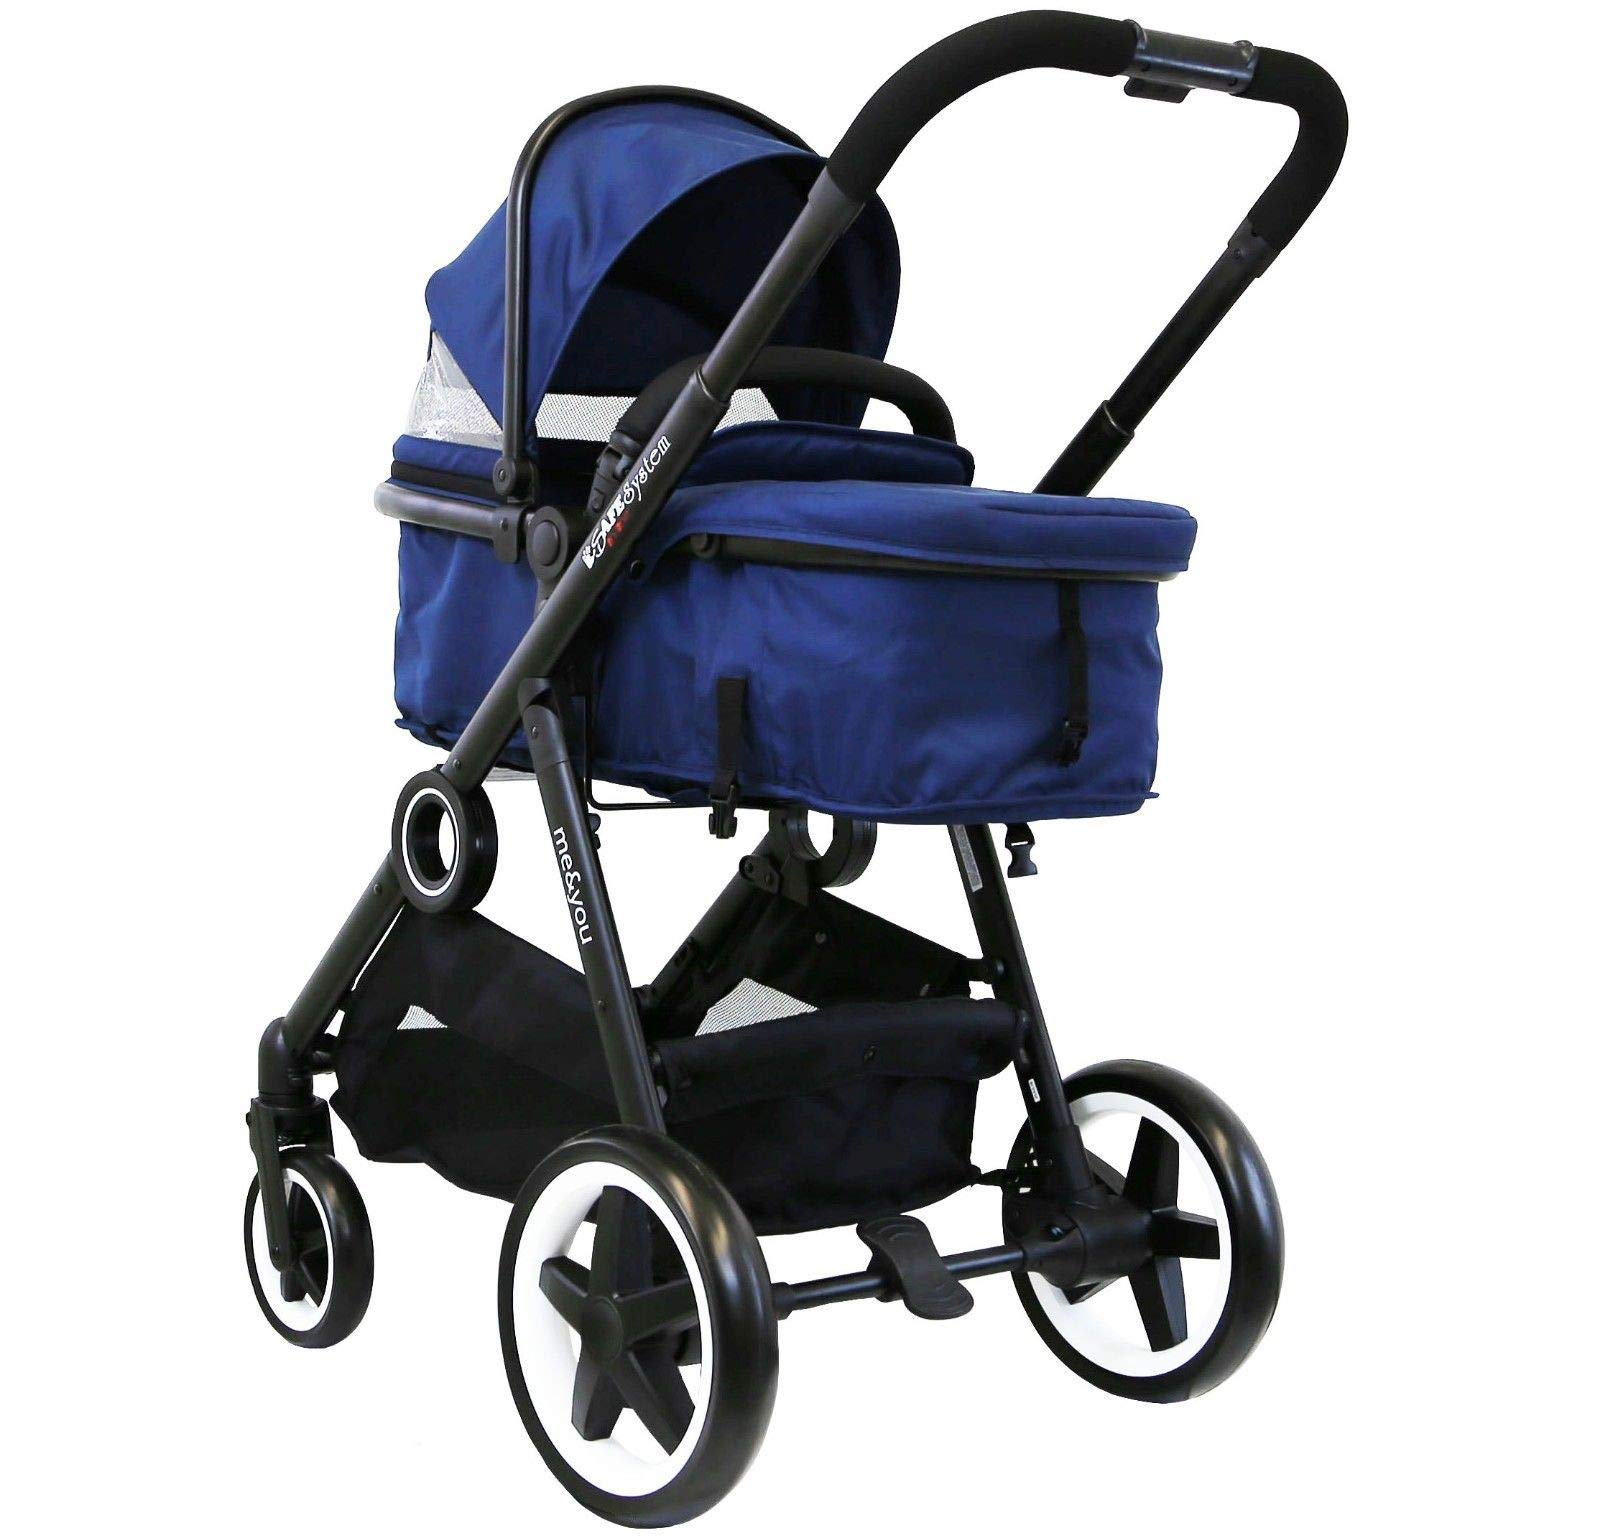 iSafe Me&You Inline Tandem Travel System with Second Seat & Rain Cover - Royal Blue iSafe Sleek & Eye Catching Matte Black Chassis, Weighing Only 16Kgs Easy One Second Fold, For Those Parents On The Go Soft Grip Extendable 3 Height Handle, To Suit Parents Of Any Height 5